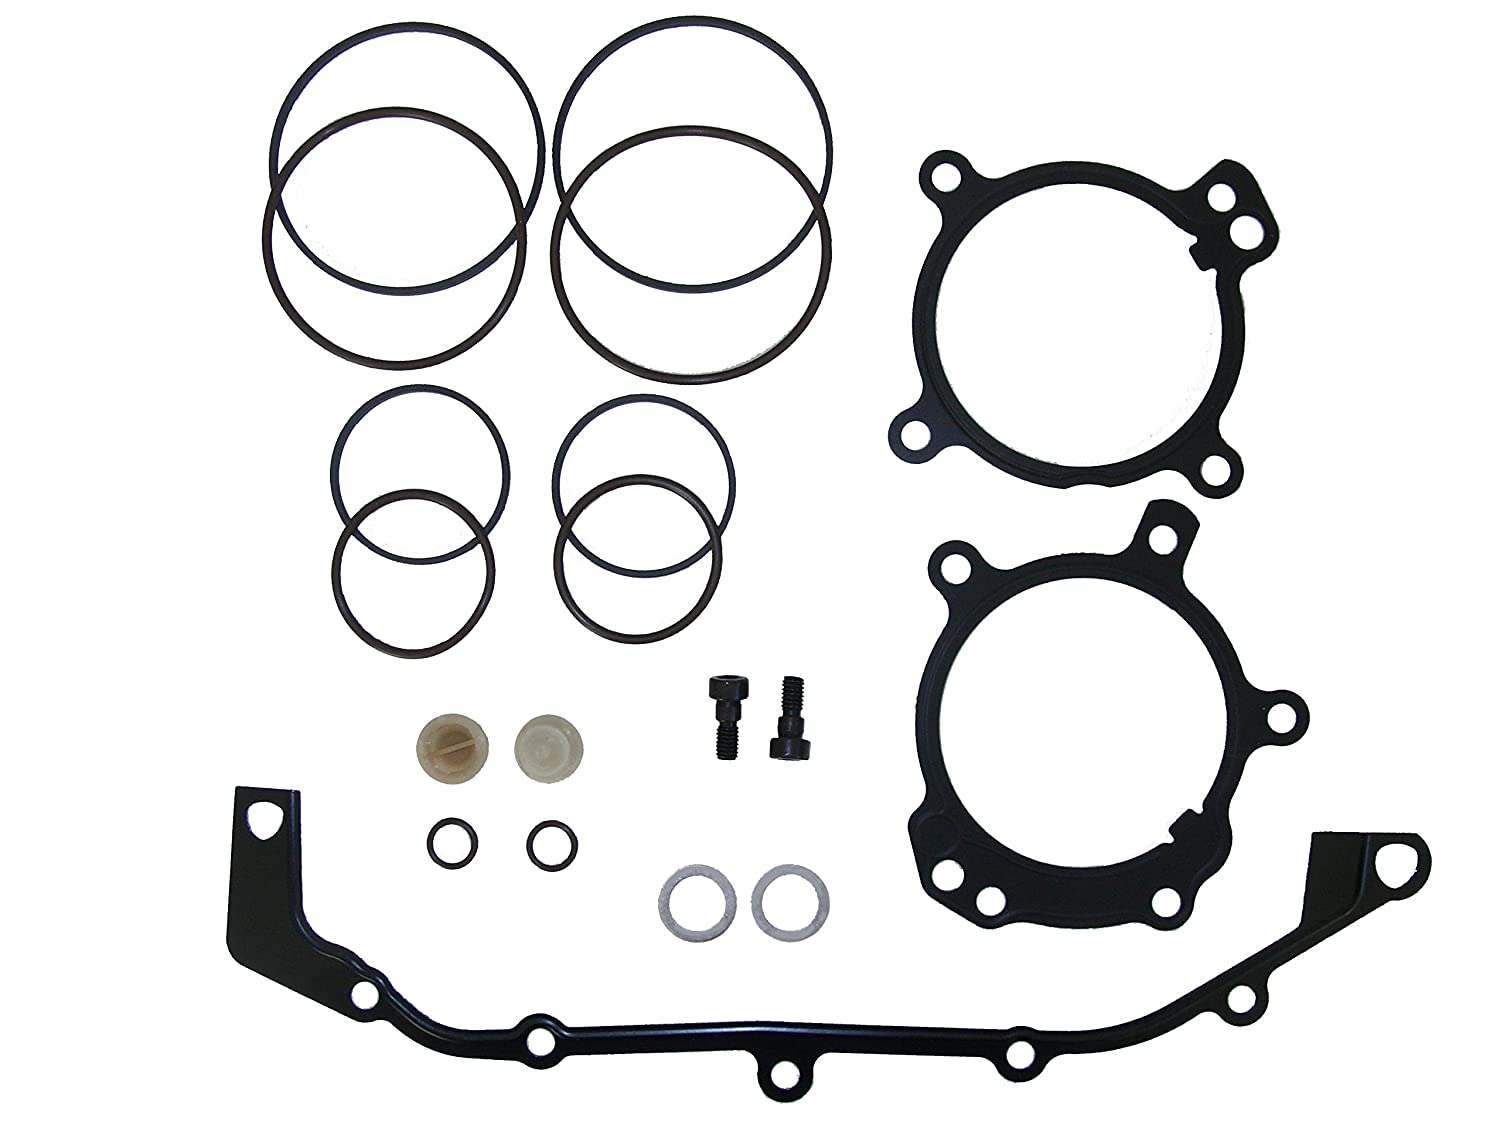 Bmw Dual Vanos O Ring Seal Repair Kit E36 E39 E46 E53 1996 528i Engine Diagram E60 E83 E85 M52tu M54 M56 Automotive